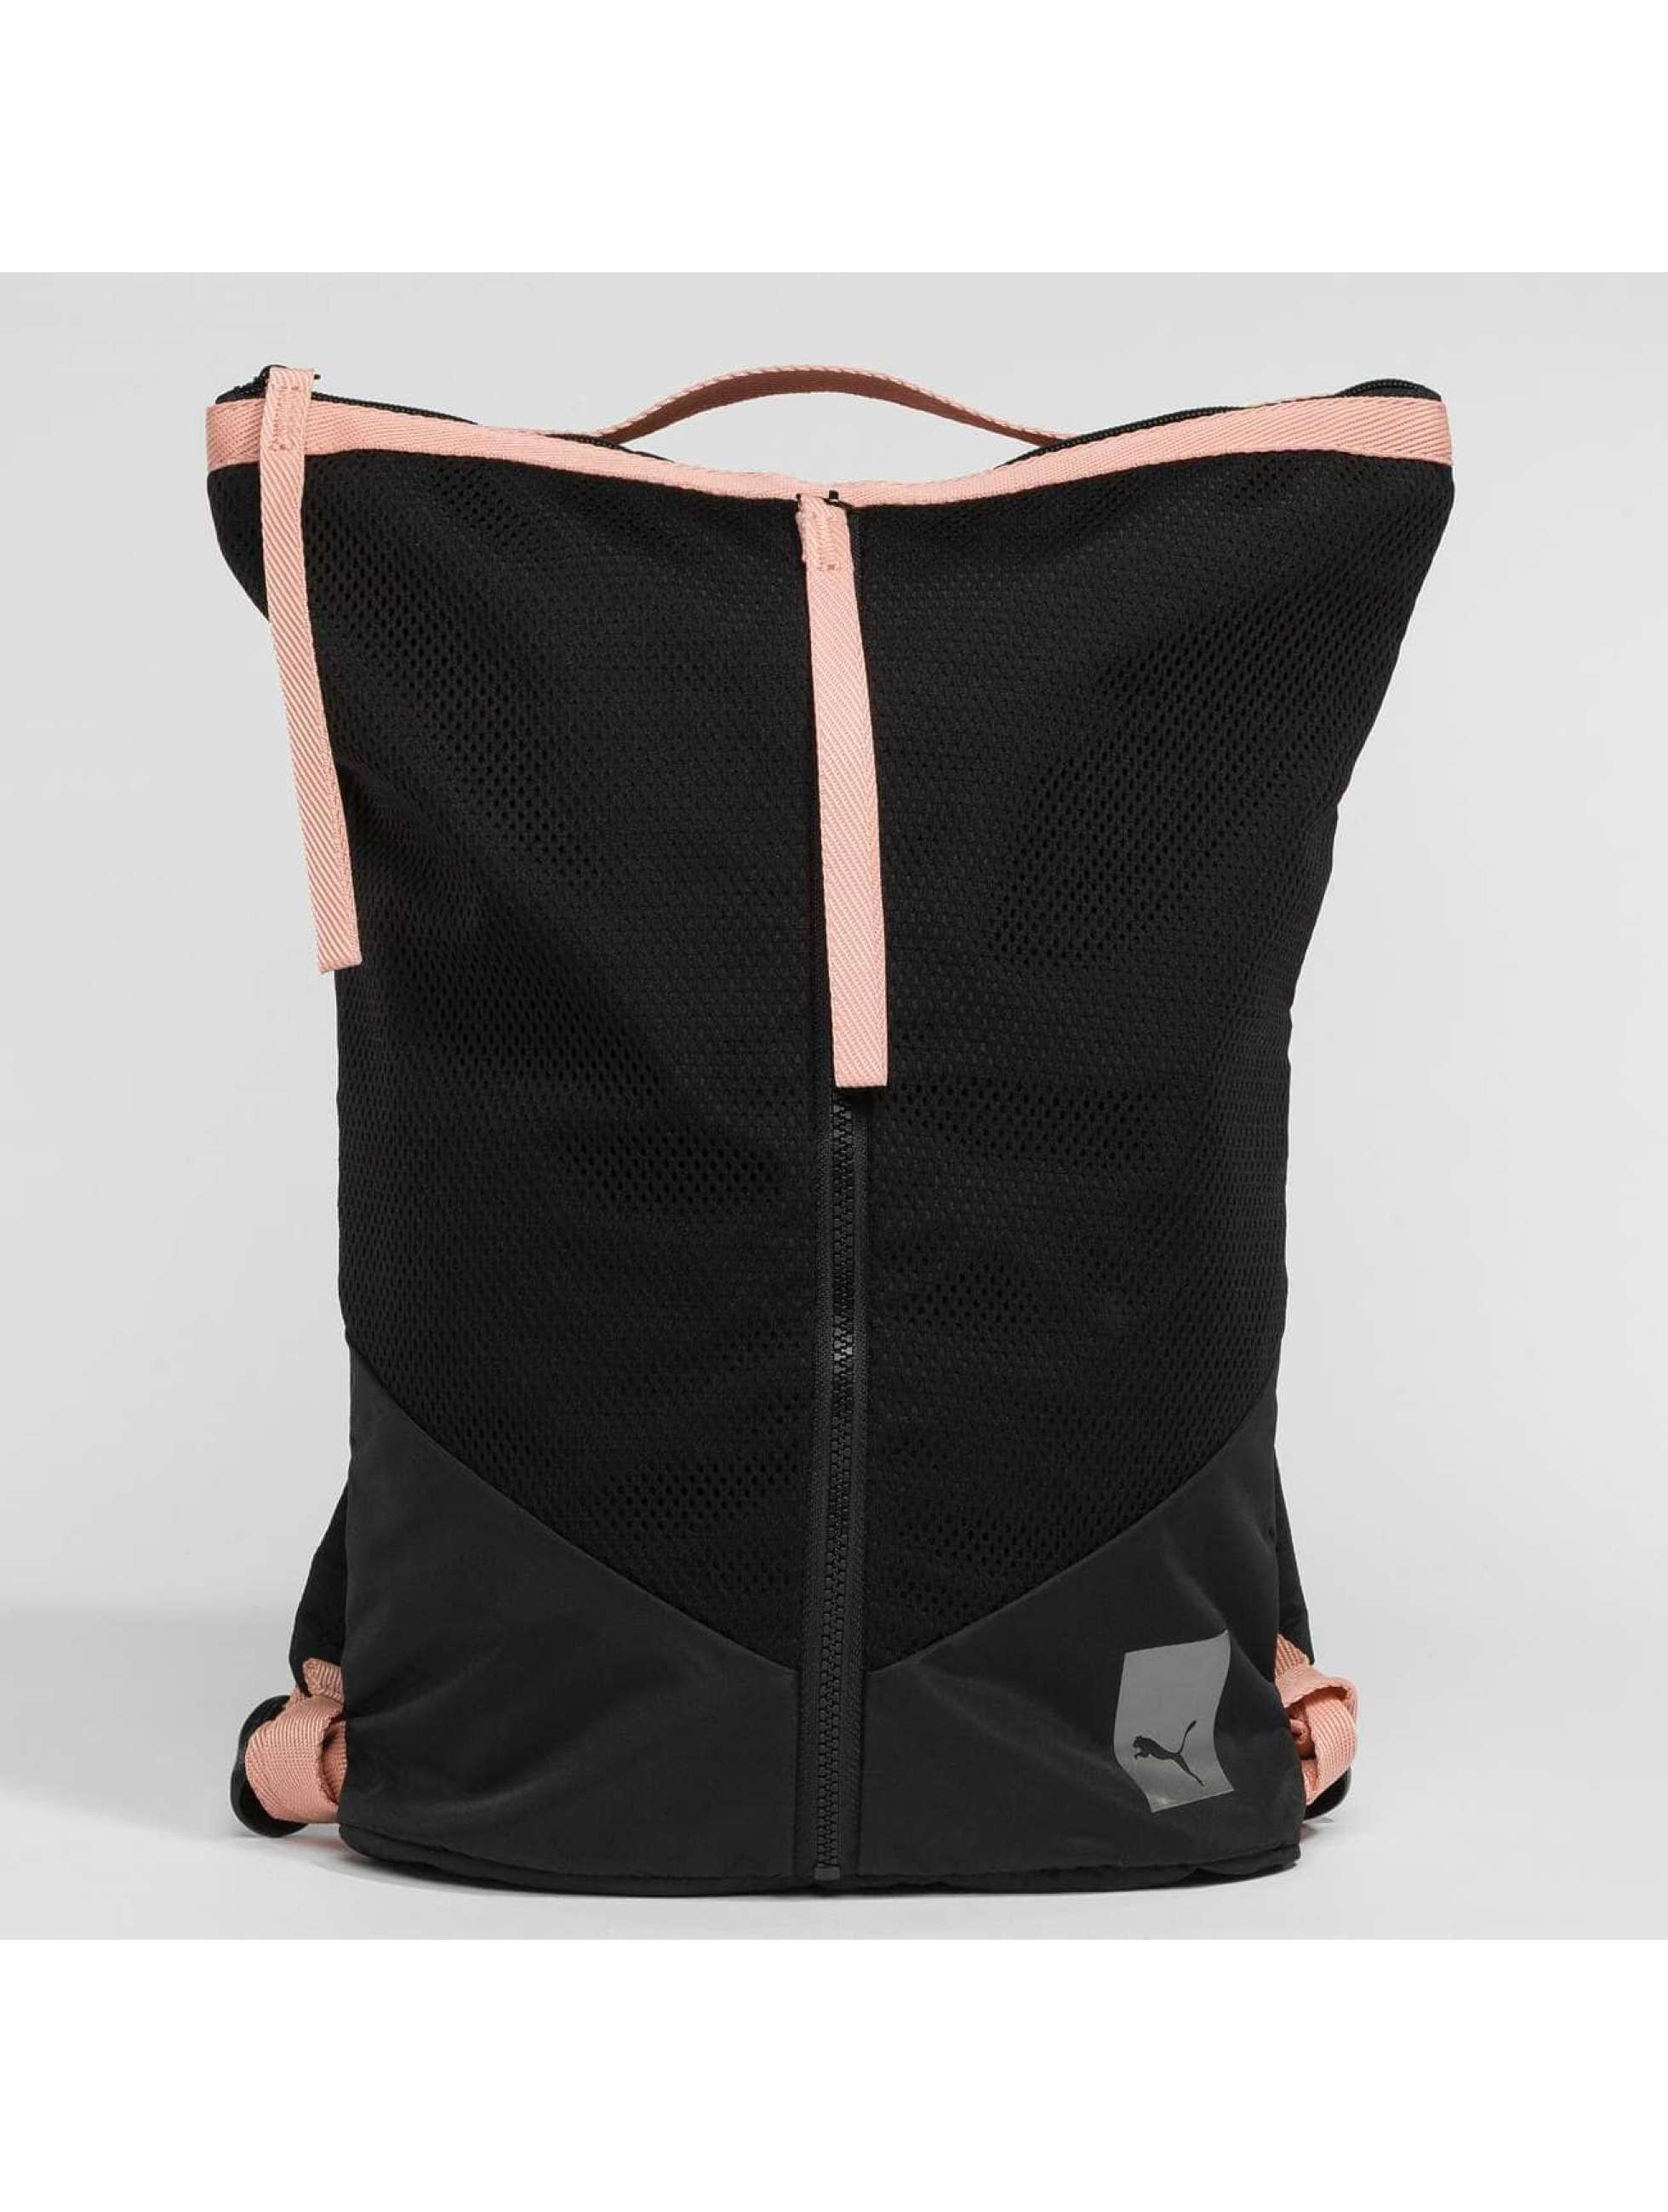 Puma Backpack Prime Zip black